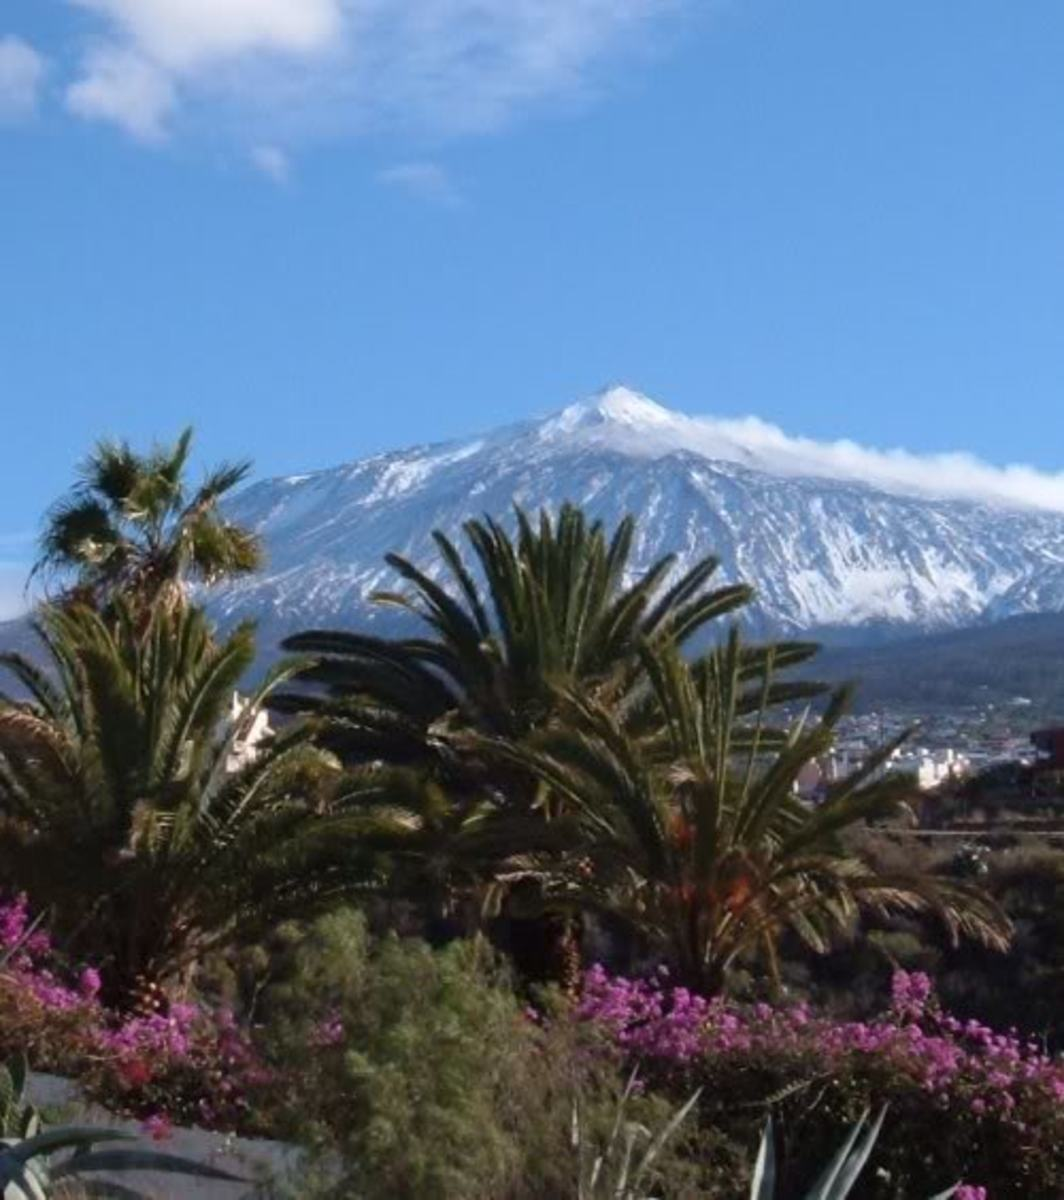 Mt Teide as viewed from San Marcos